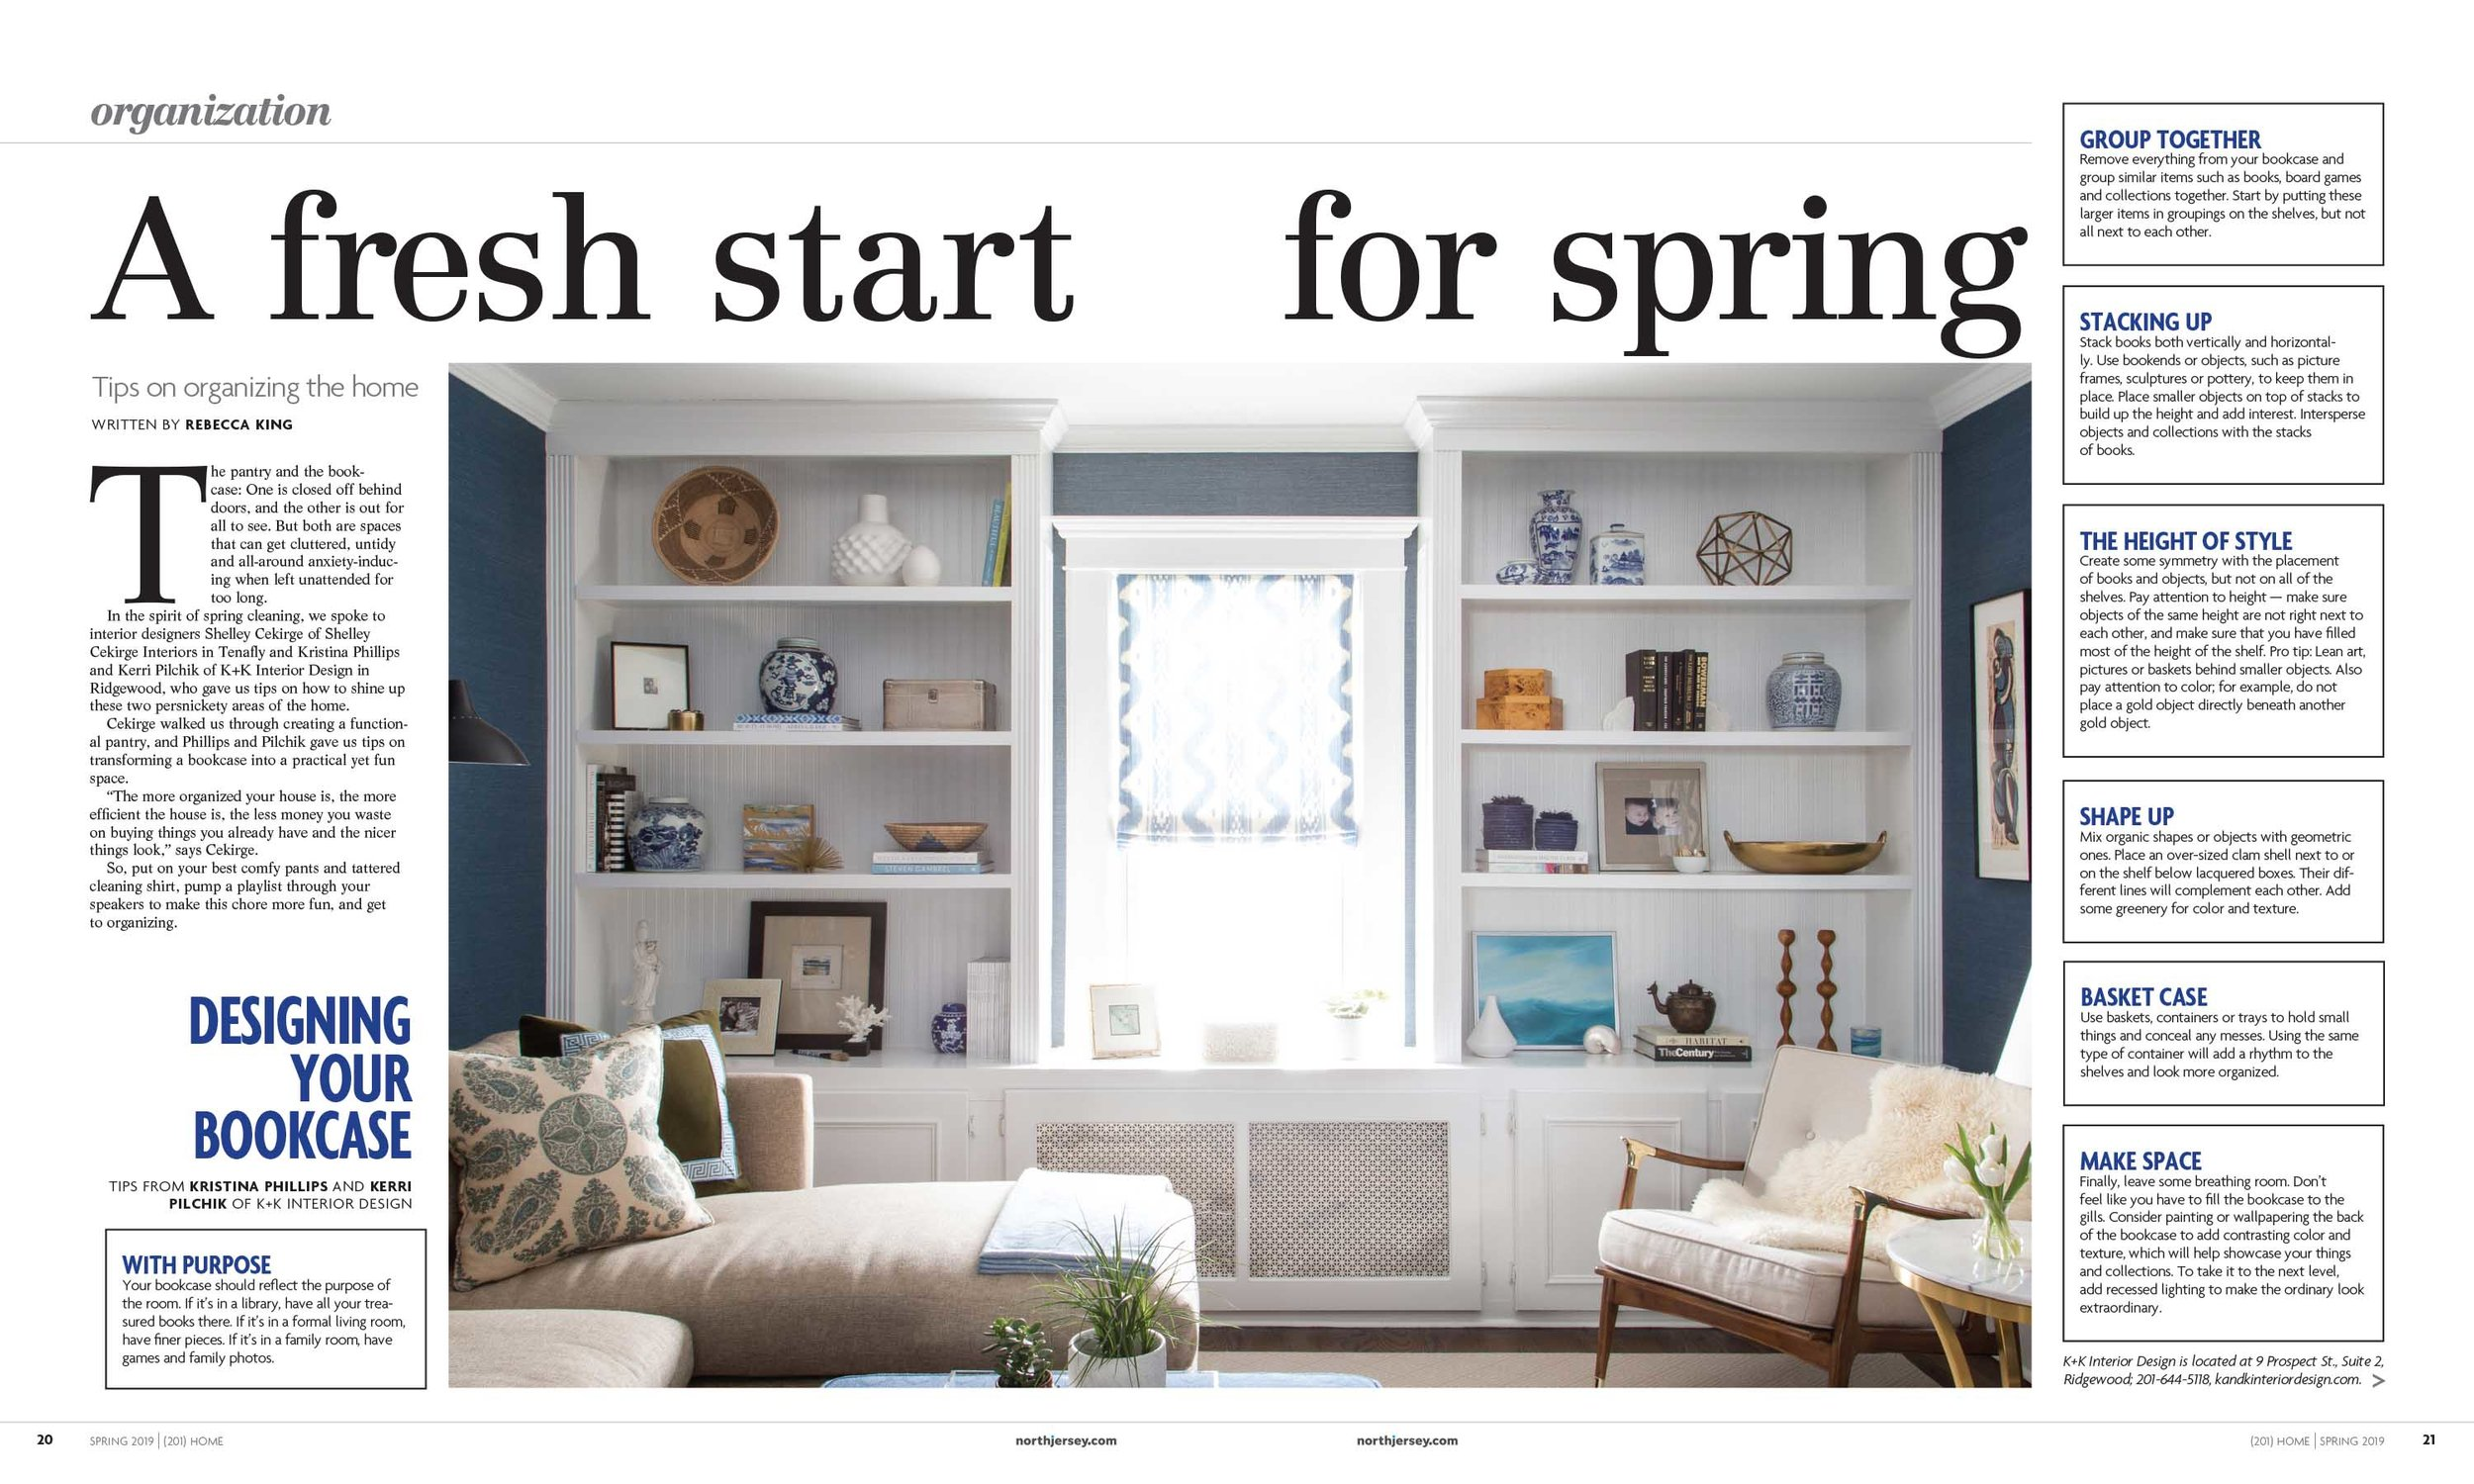 201HomeSpring2019-Org.jpg